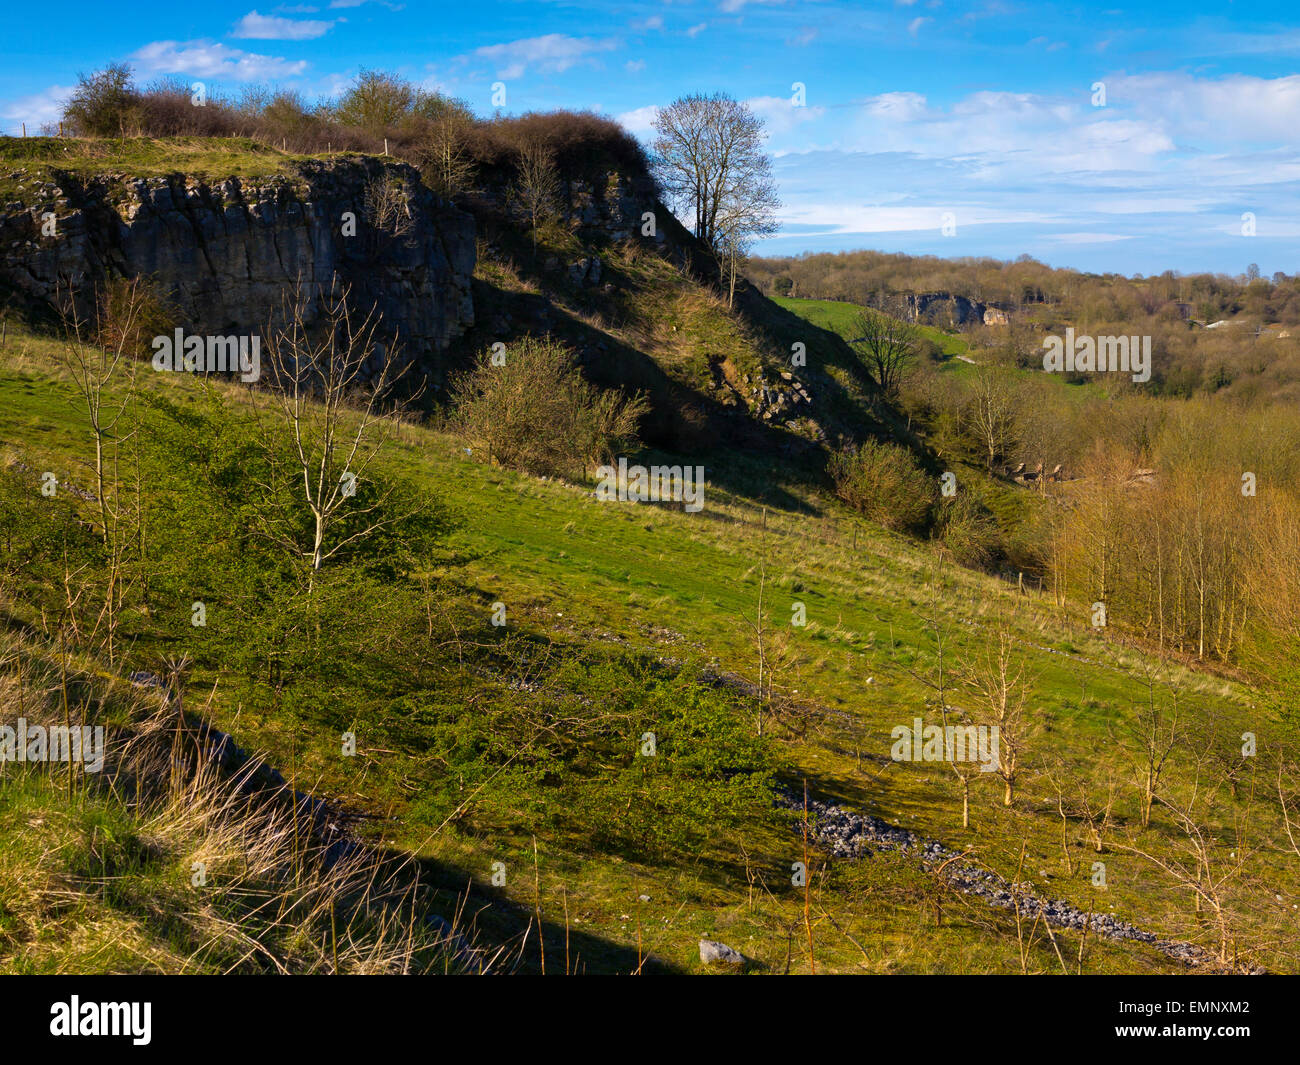 A view of the hillside around Stoney Wood near Wirksworth Derbyshire Dales Peak District England UK in Spring - Stock Image